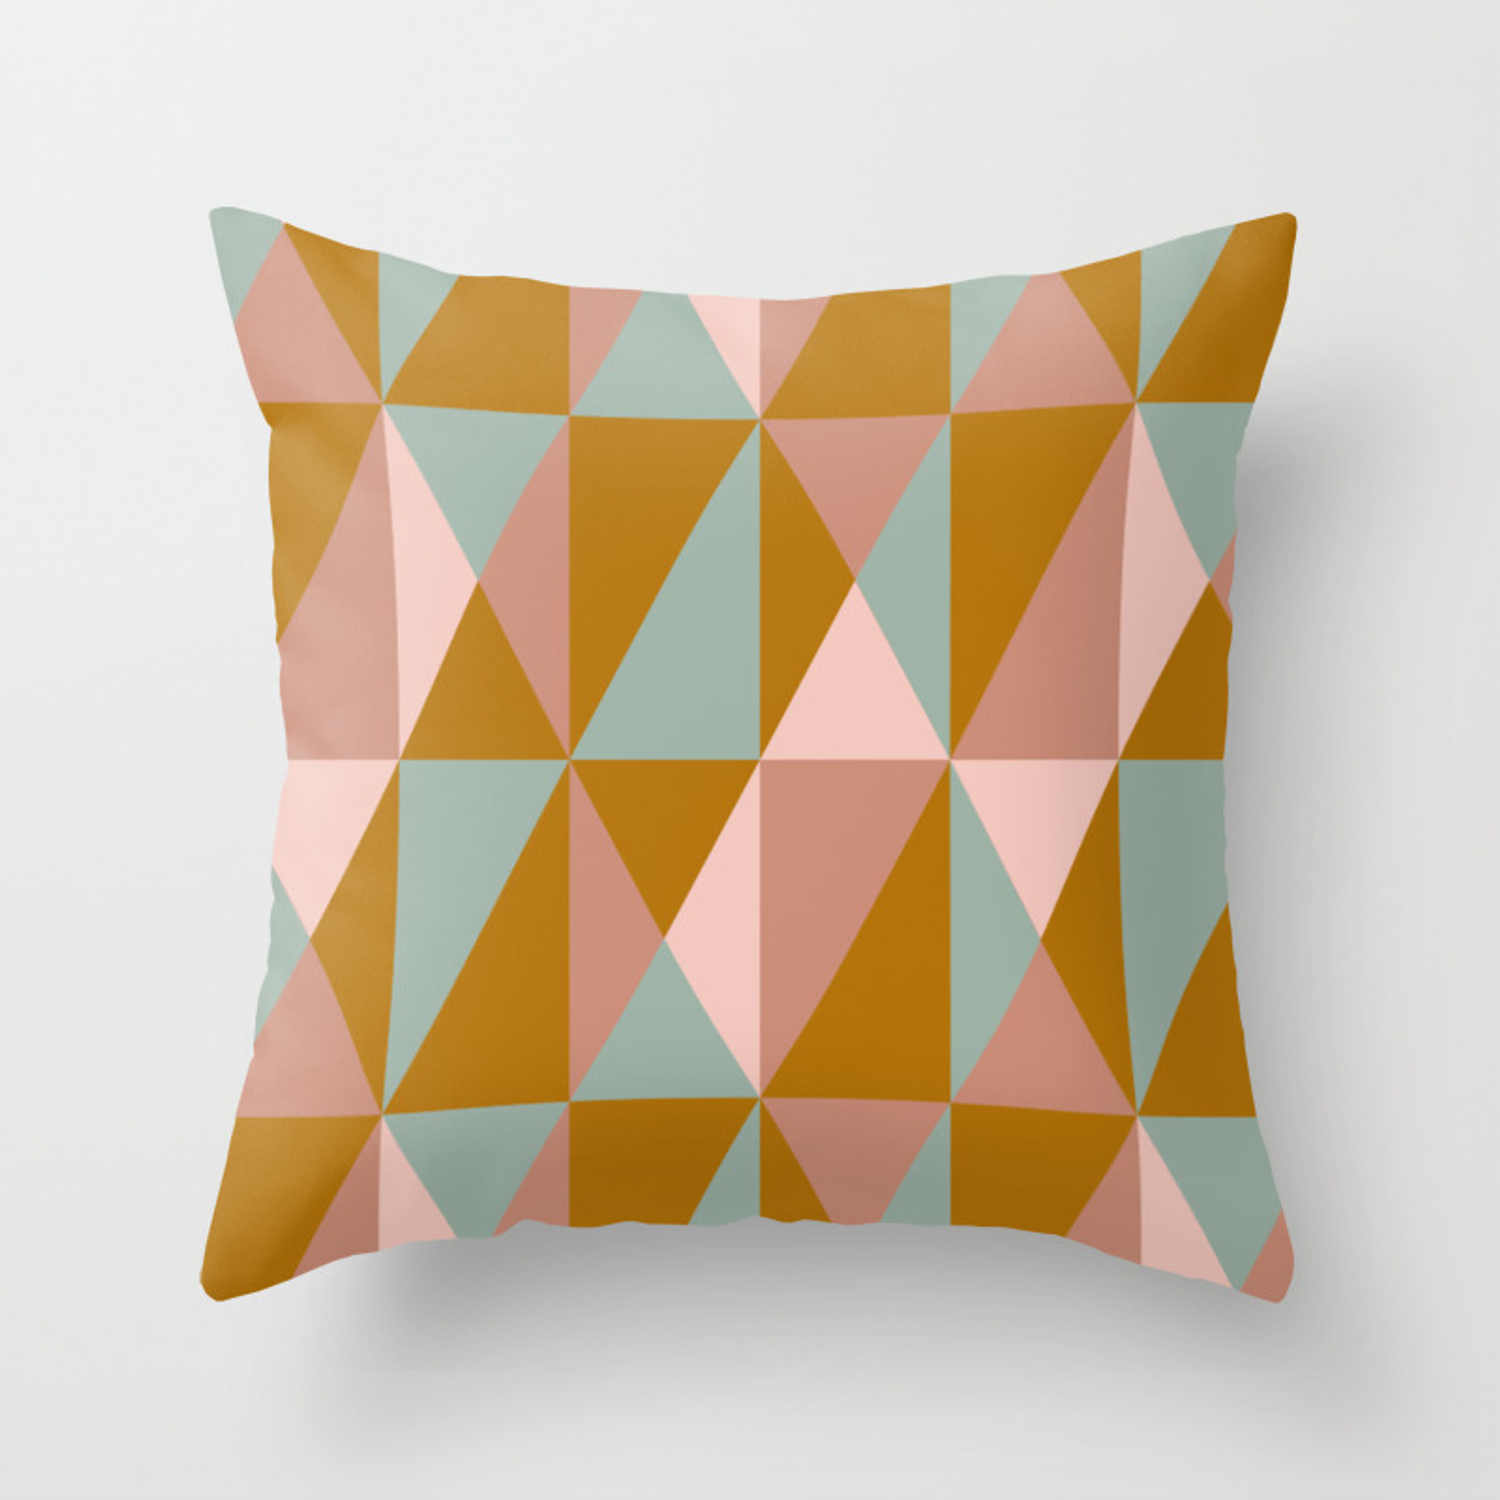 Earth Tone Throw Pillows.Modern Triangle Quilt Design In Subdued Earth Tones Throw Pillow